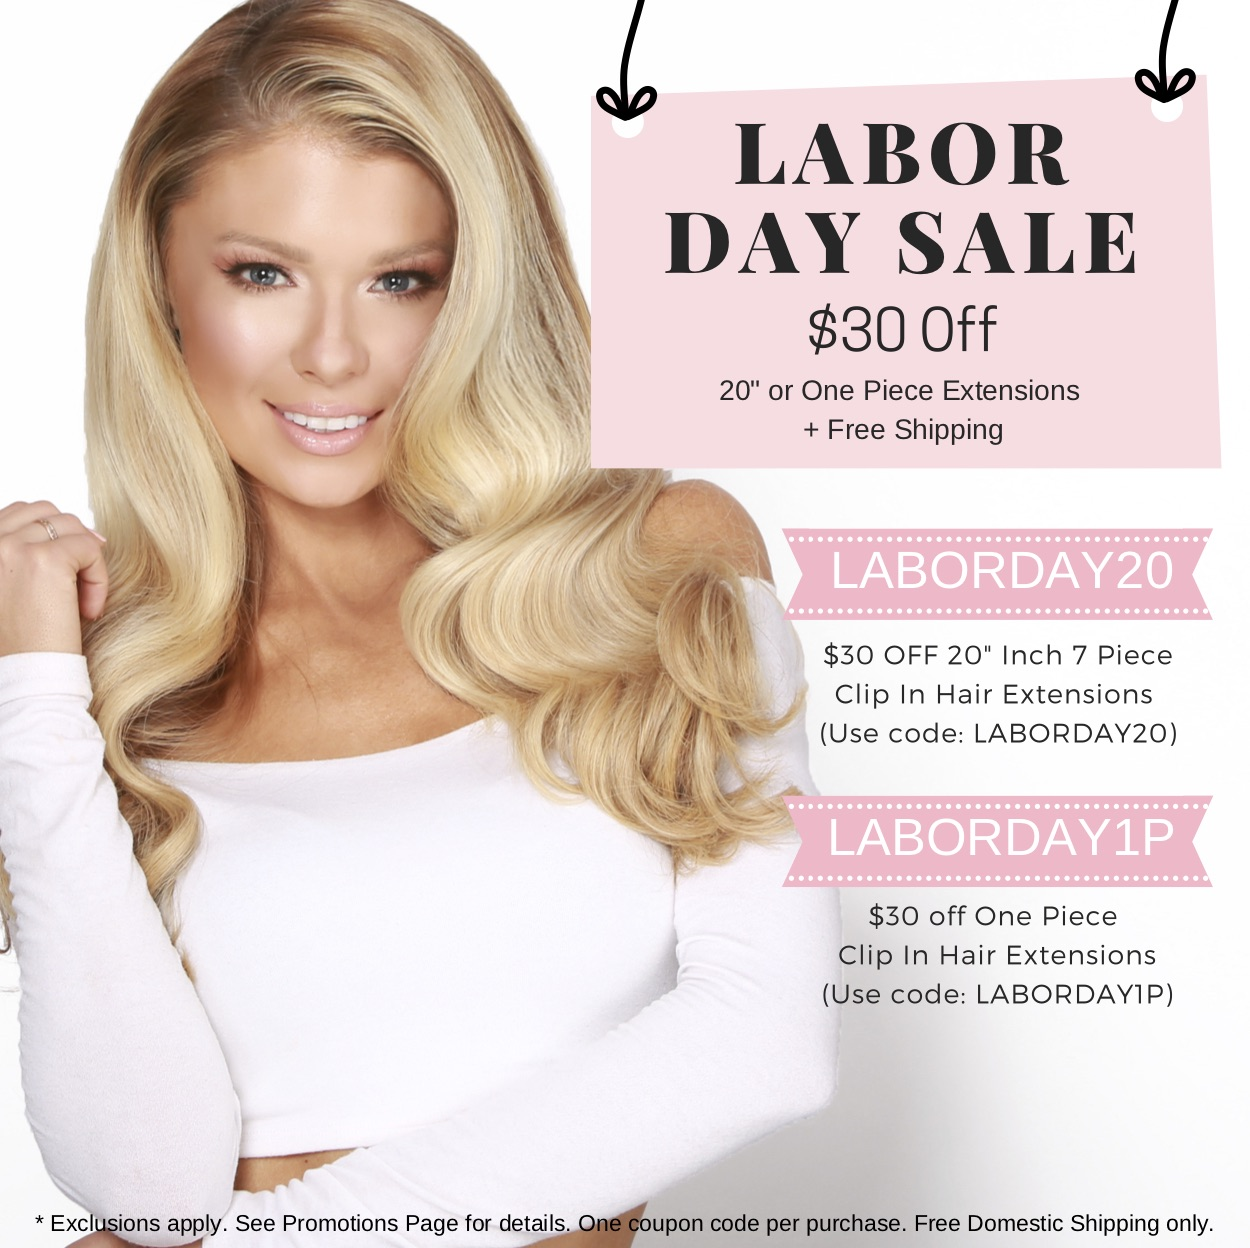 "Labor Day Sale $30 off 20"" Or One Piece Extensions"